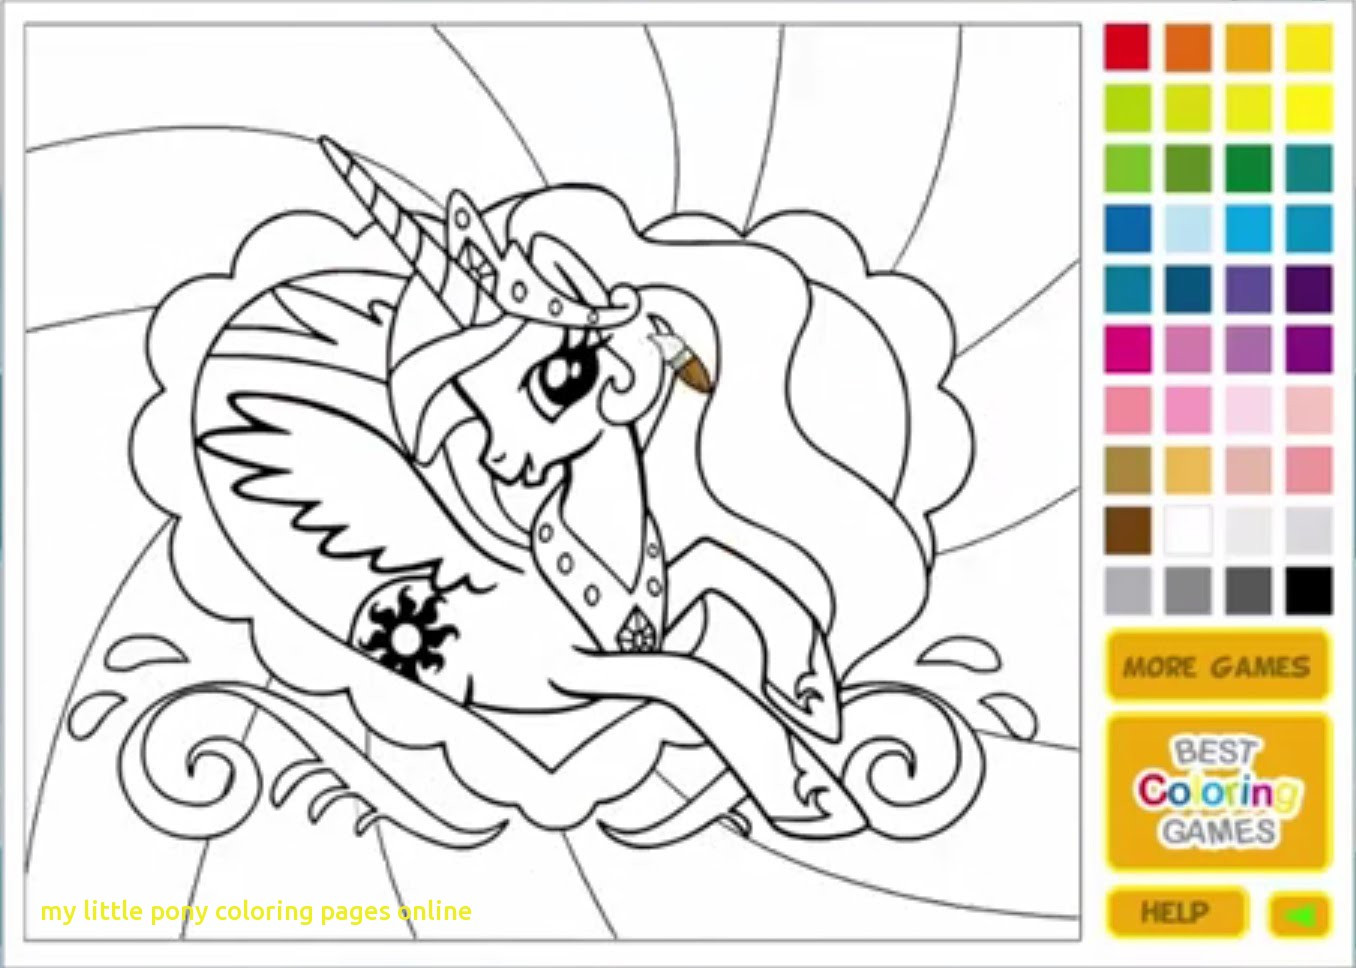 Free Coloring Sheets For Toddlers  My Little Pony Coloring Pages line